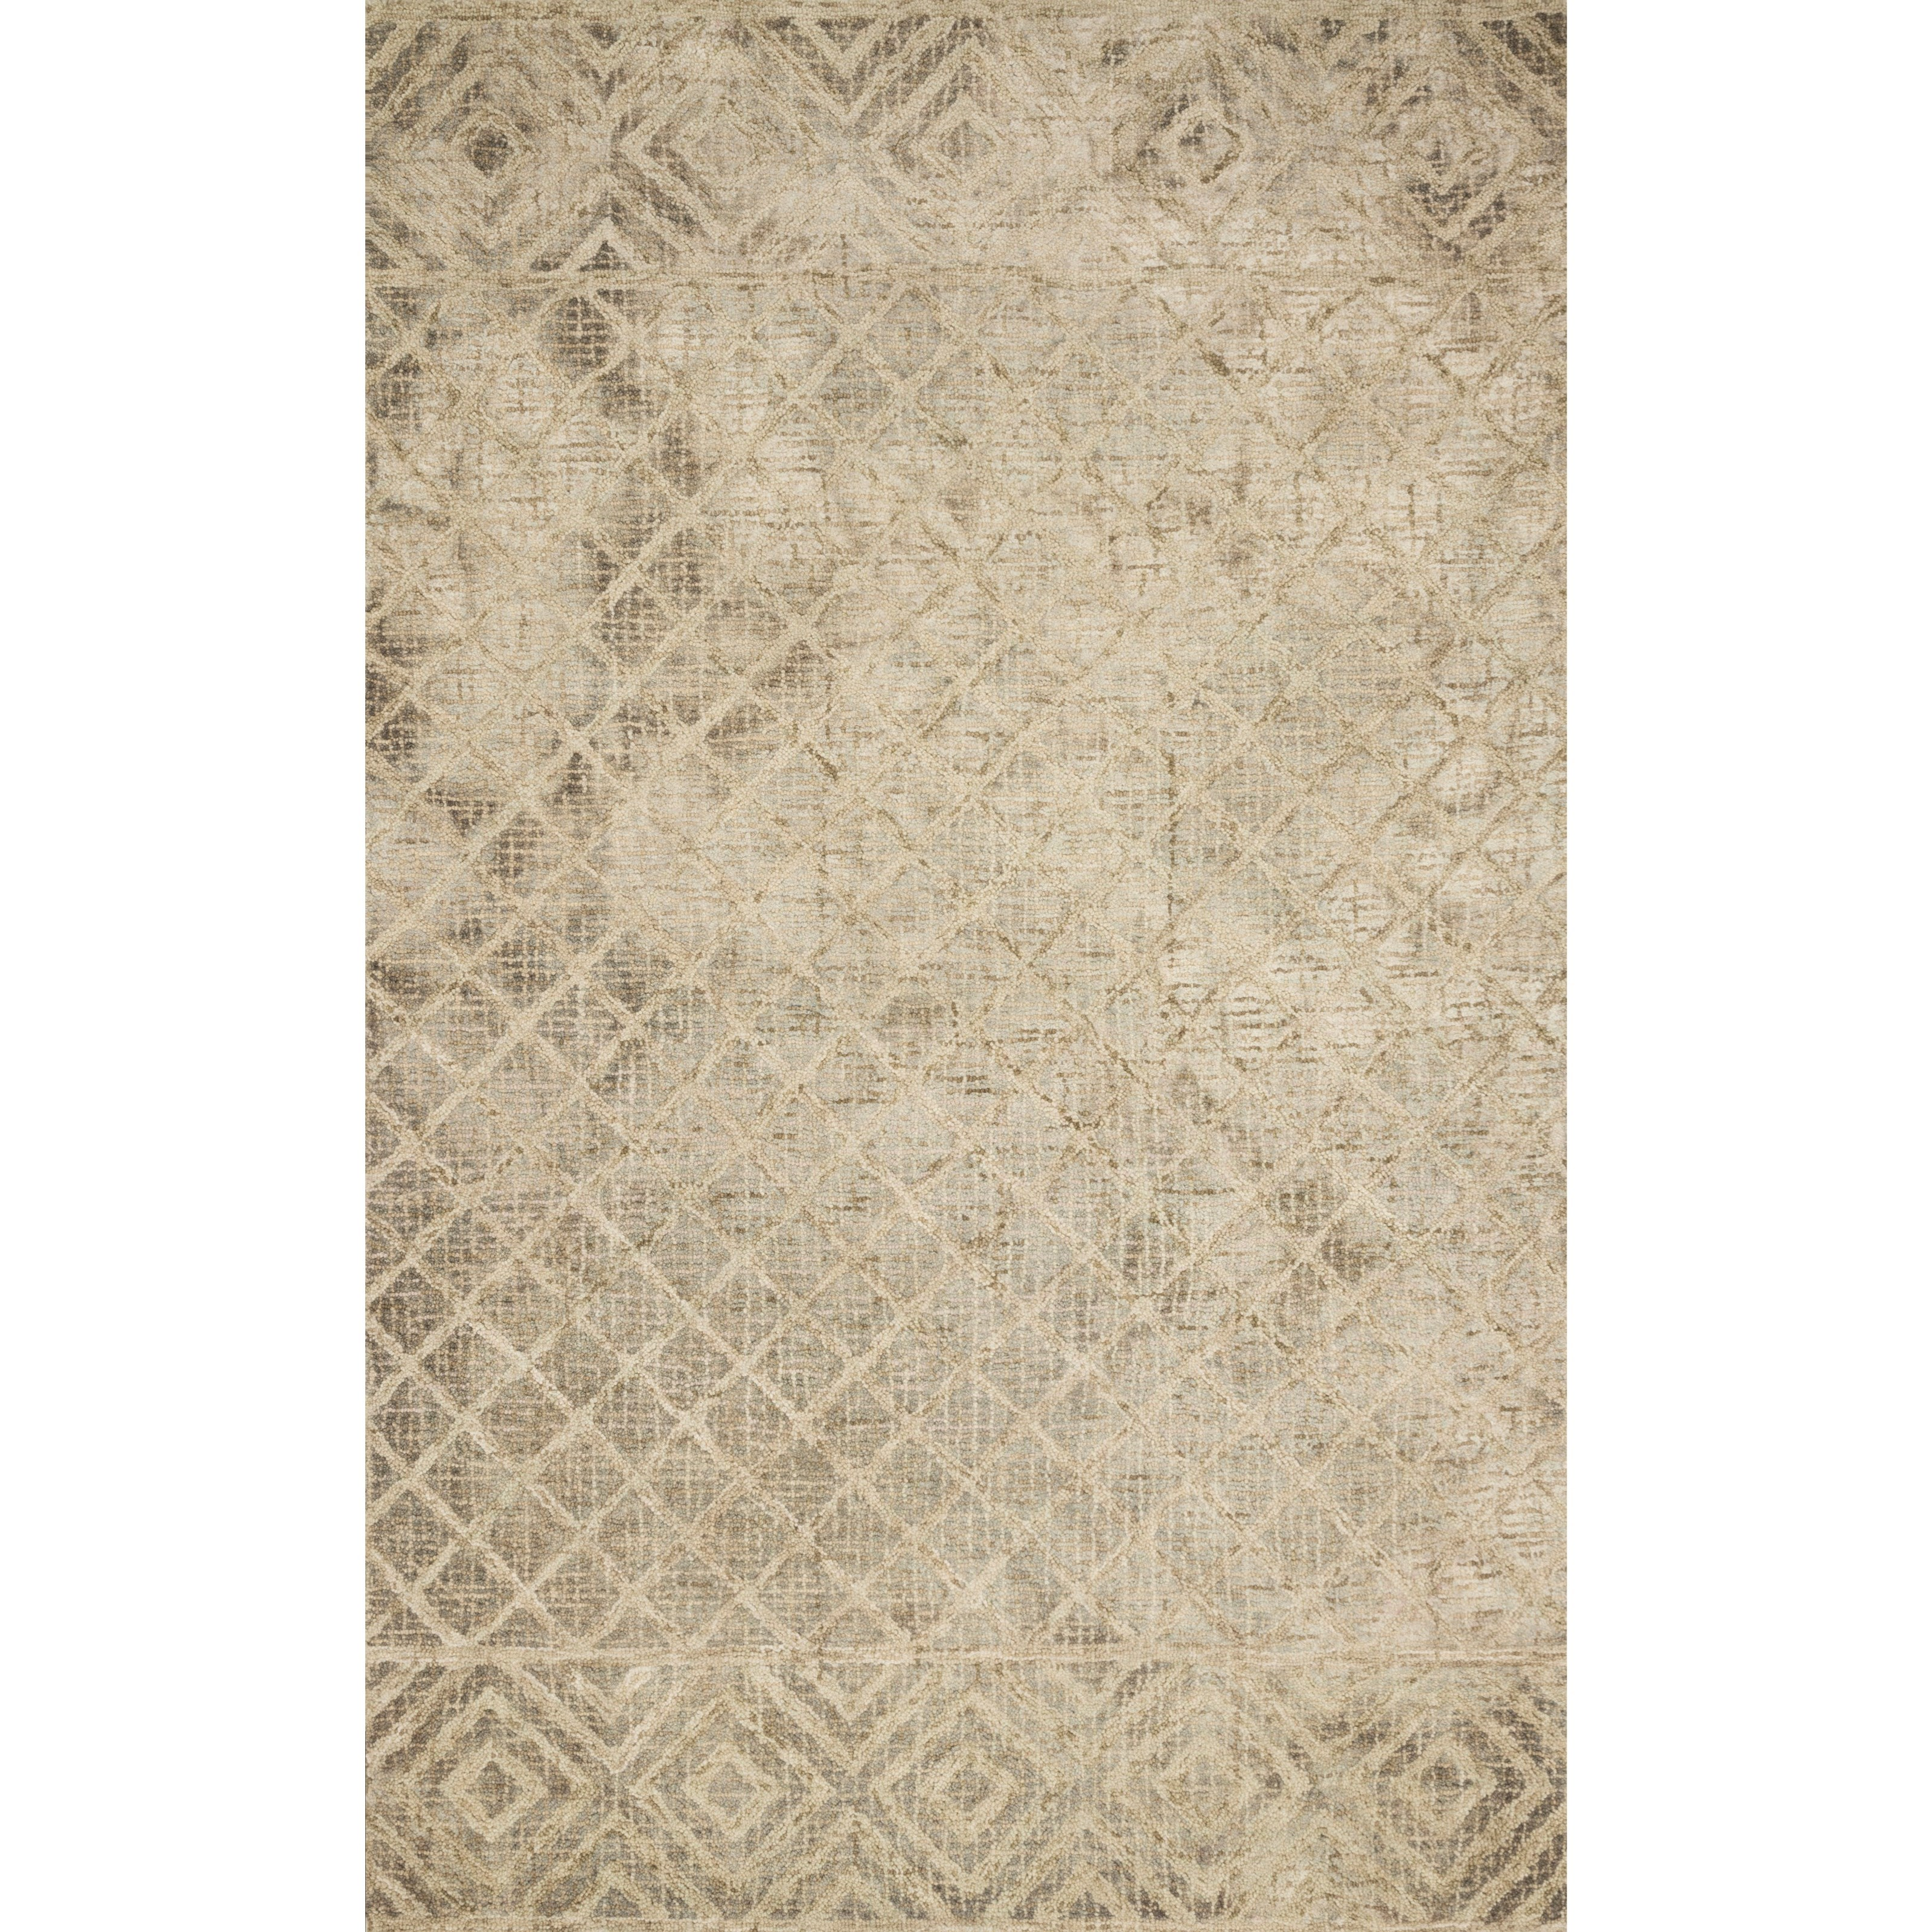 """Simone 1'6"""" x 1'6""""  Sand Rug by Loloi Rugs at Virginia Furniture Market"""